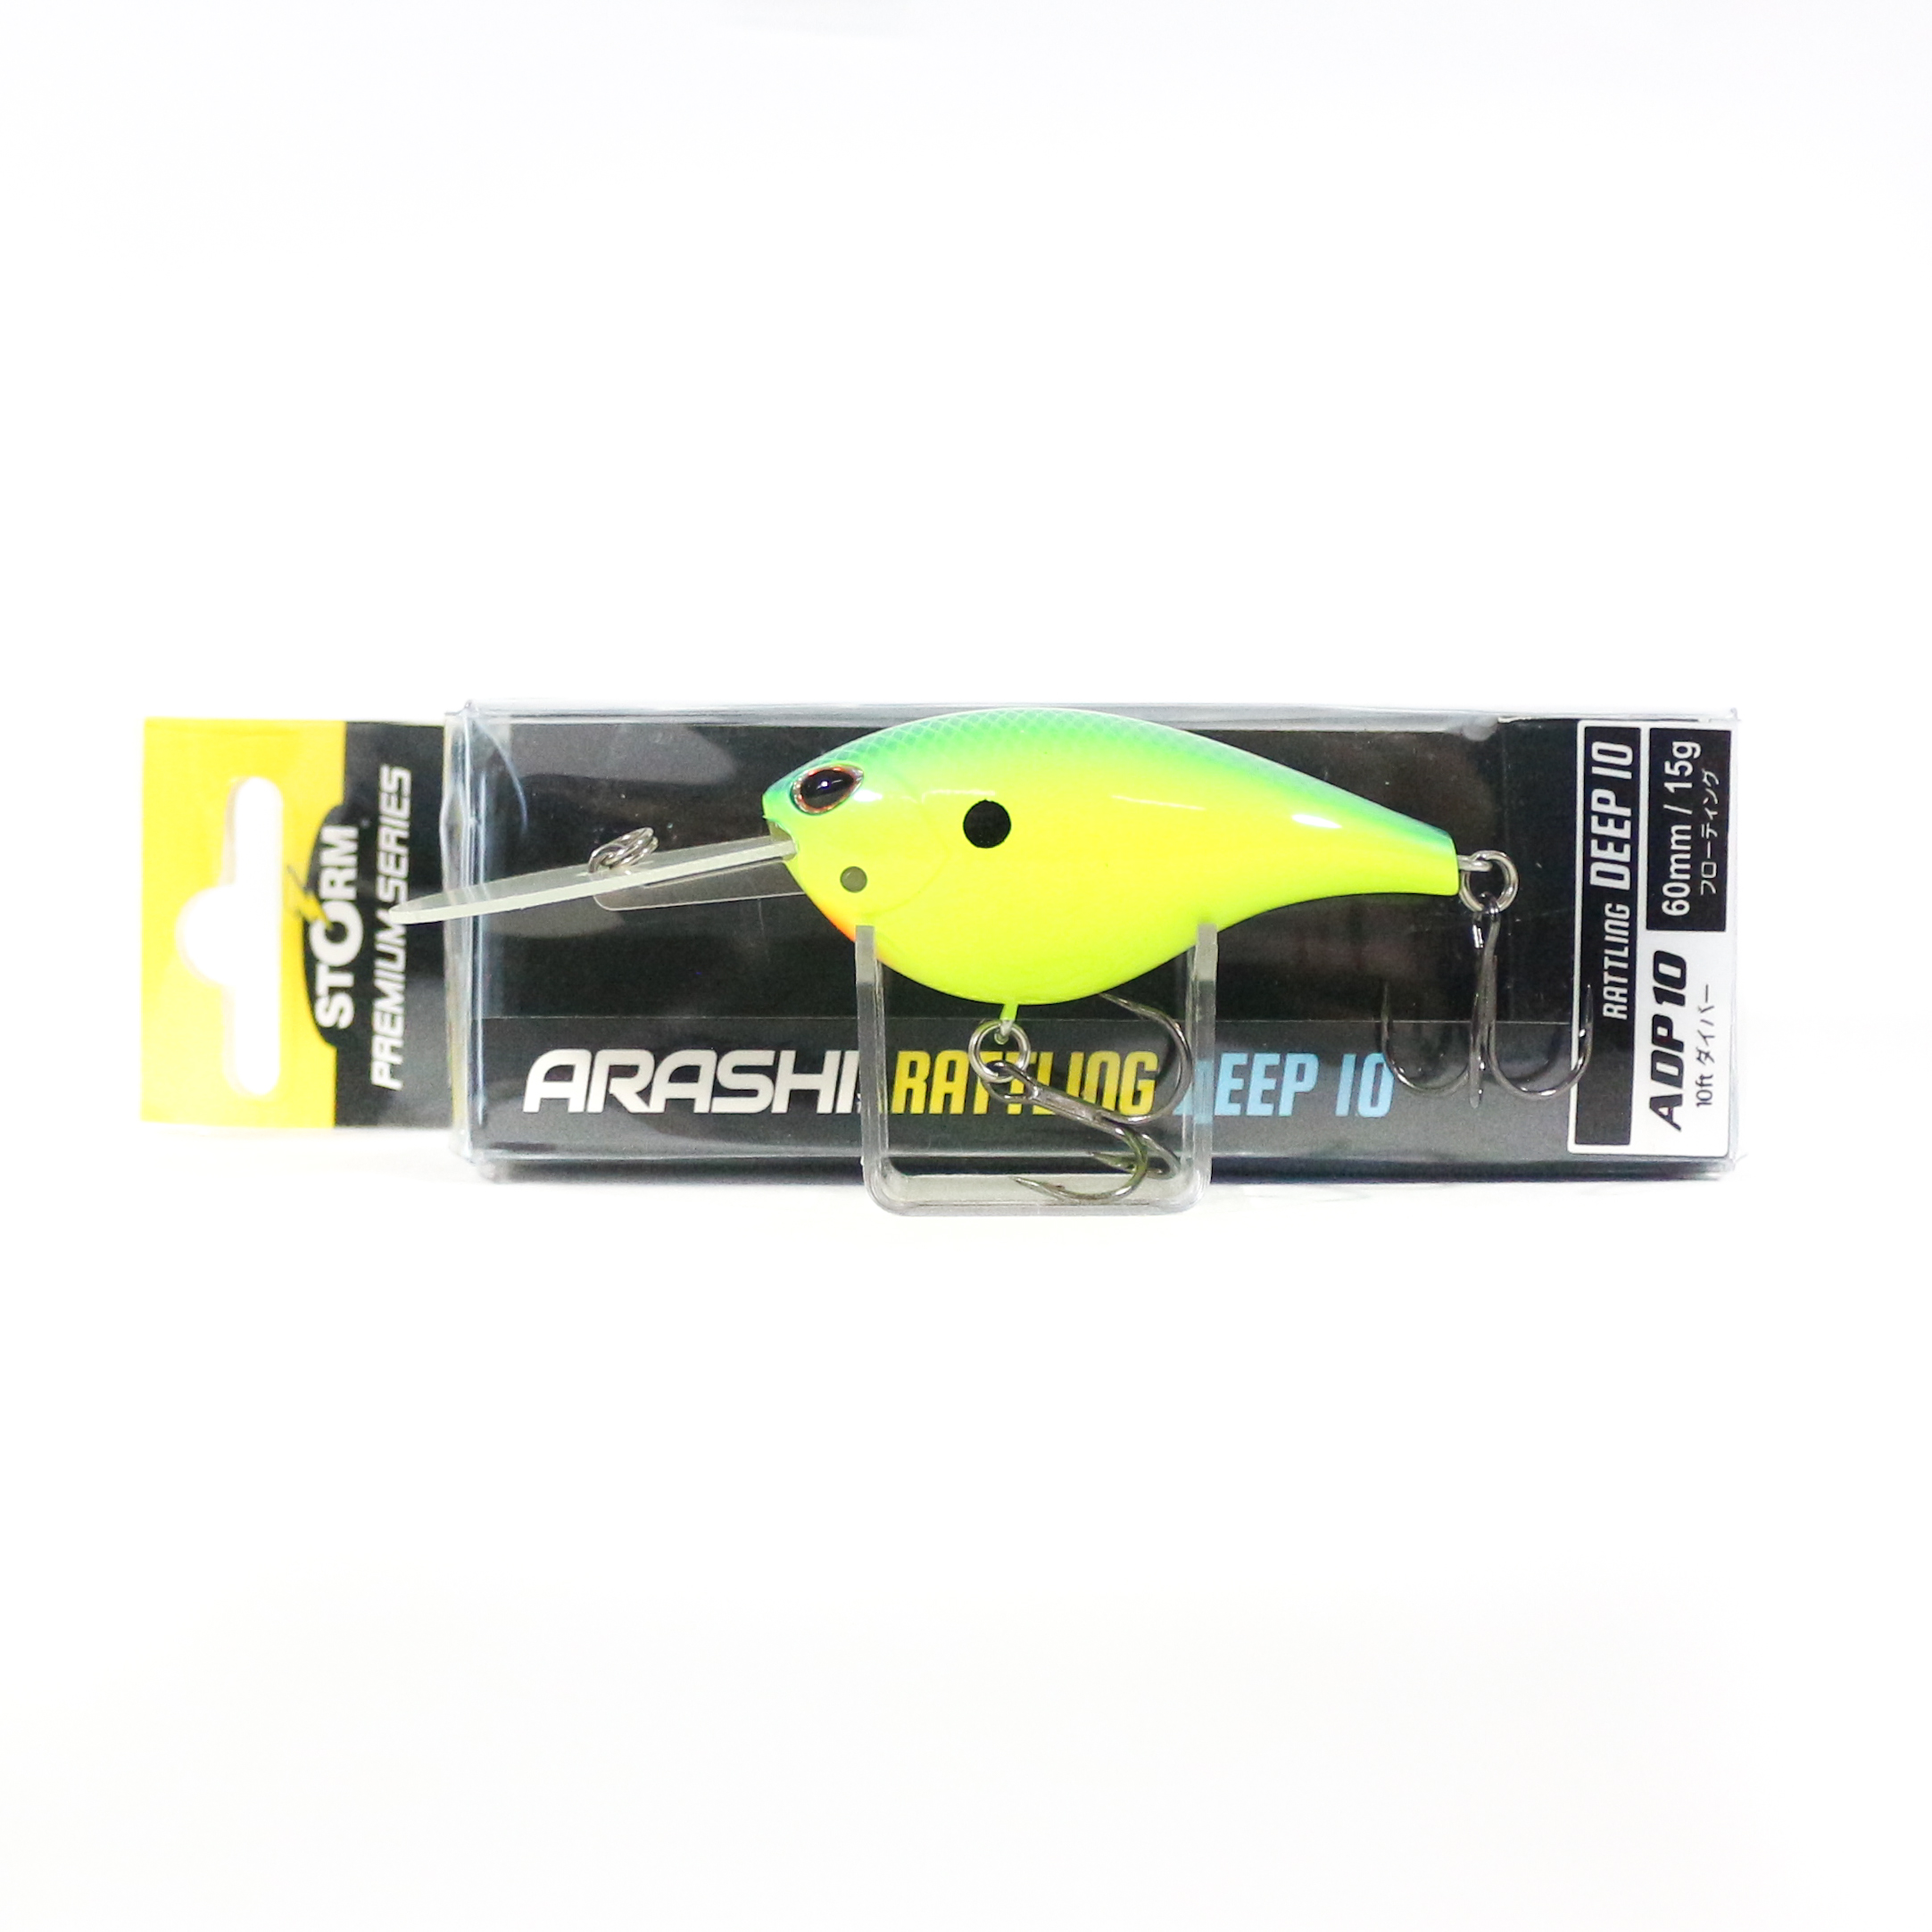 Storm Arashi Rattling Deep Floating Lure ADP10/872 (4140)